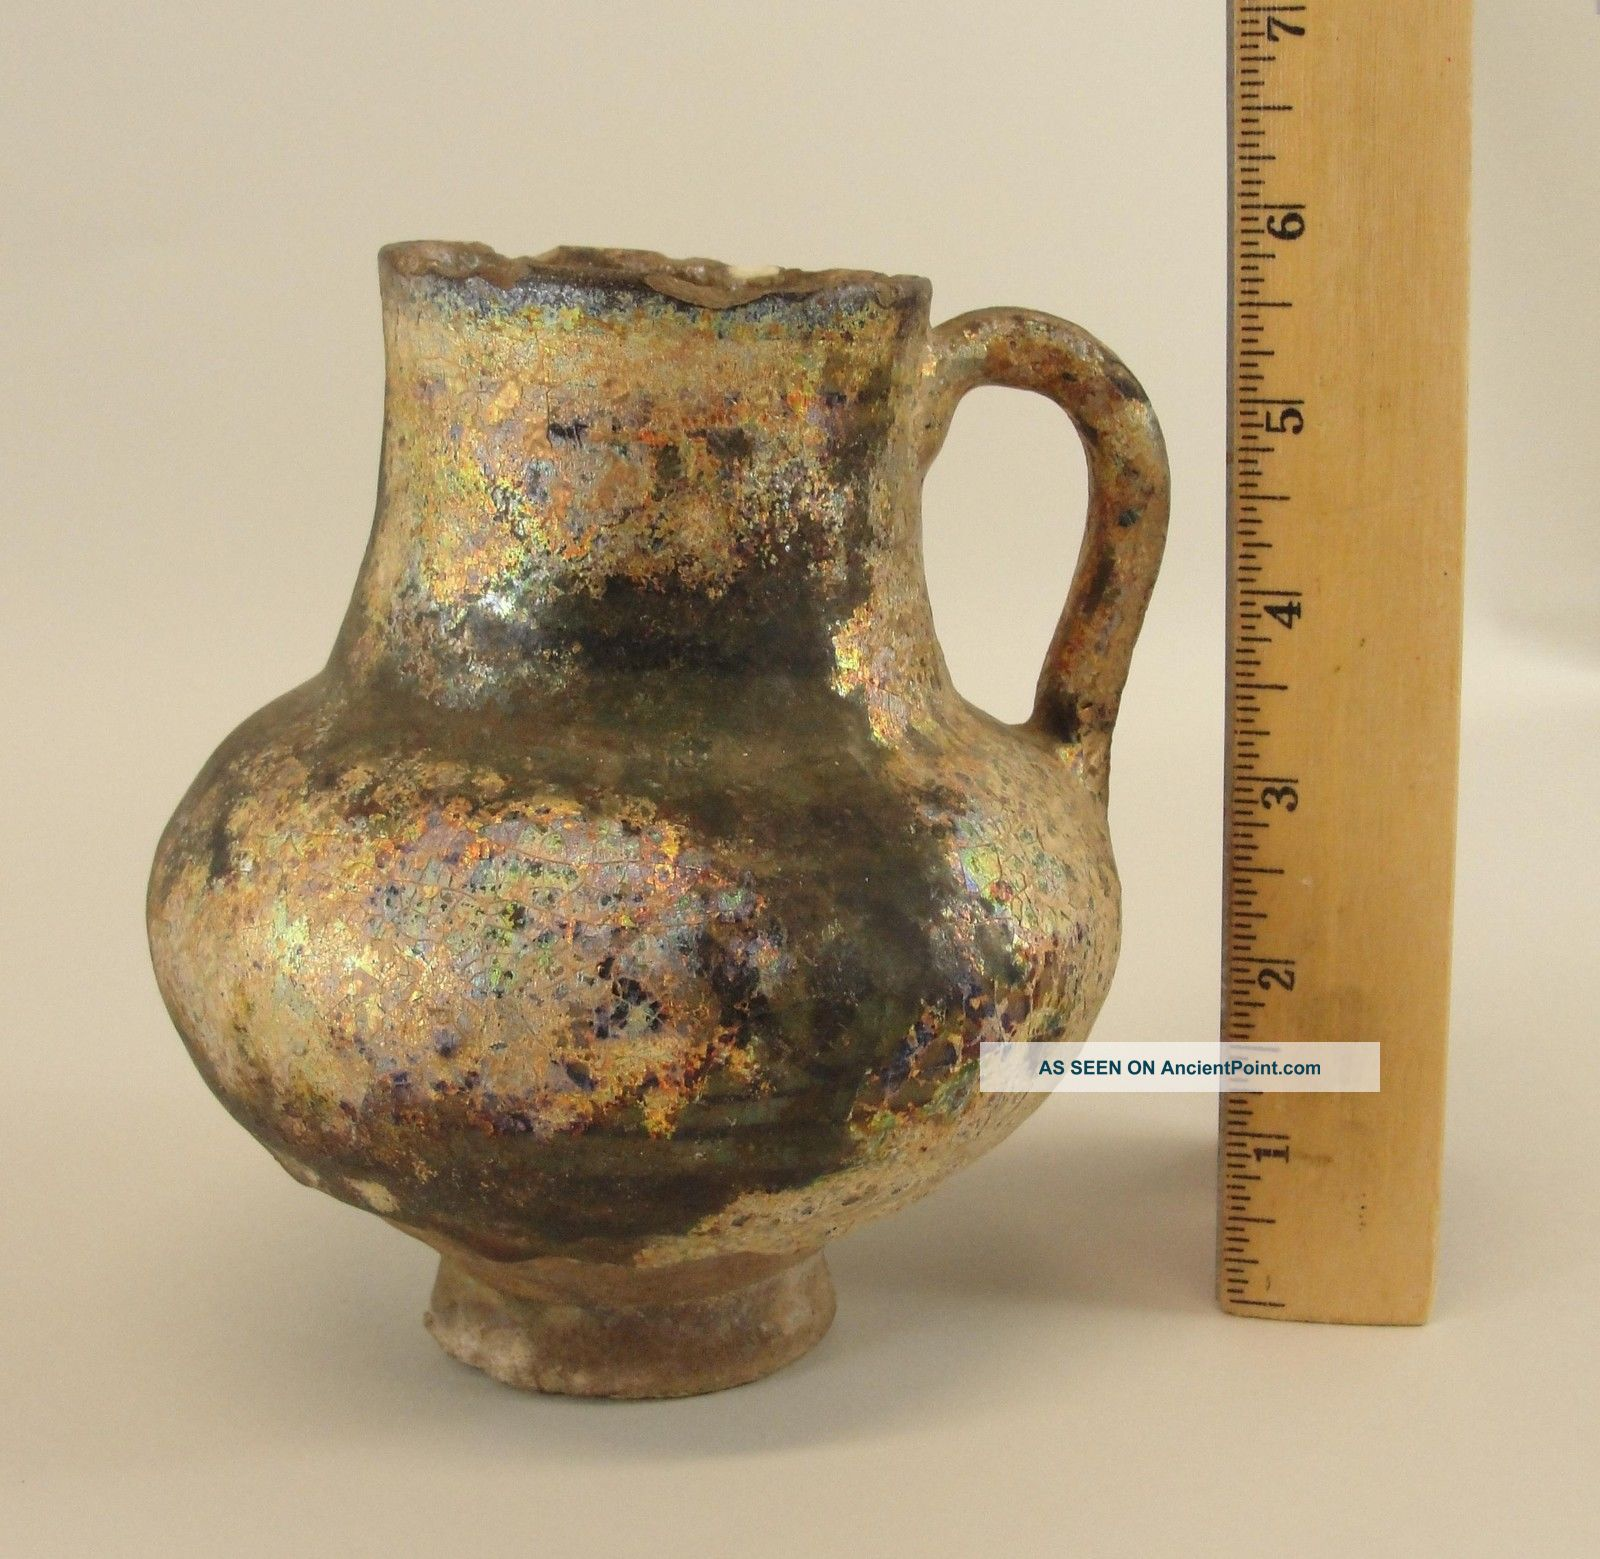 Authentic Ancient Islamic Persian Ceramic Jug Pitcher W/ Iridescent Surface Near Eastern photo